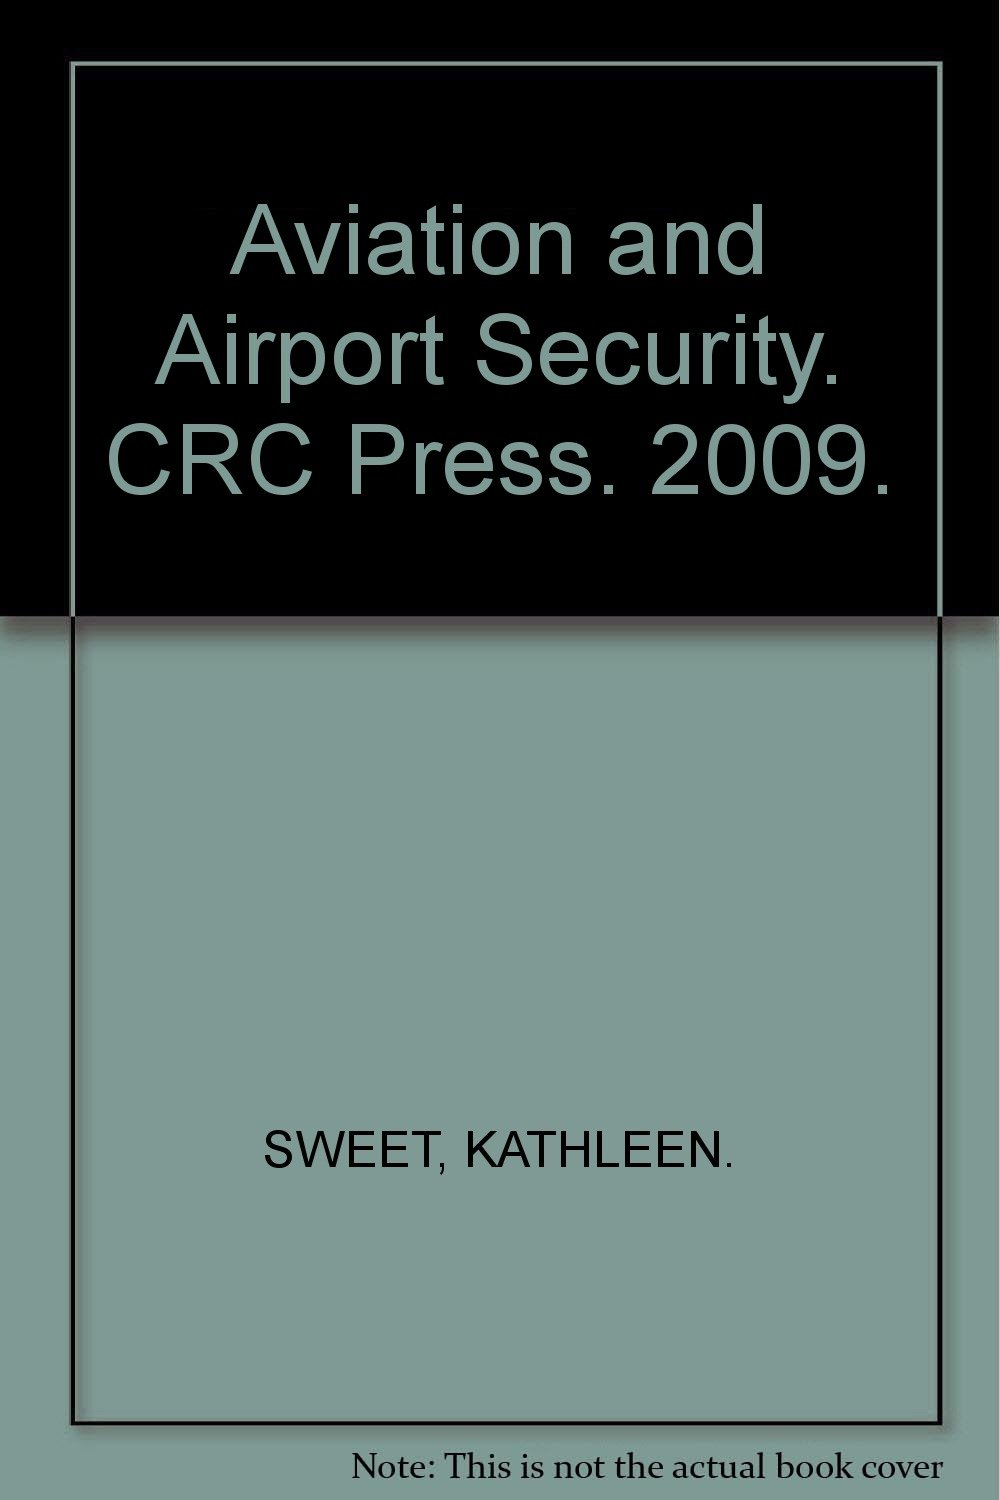 Aviation and Airport Security. CRC Press. 2009.